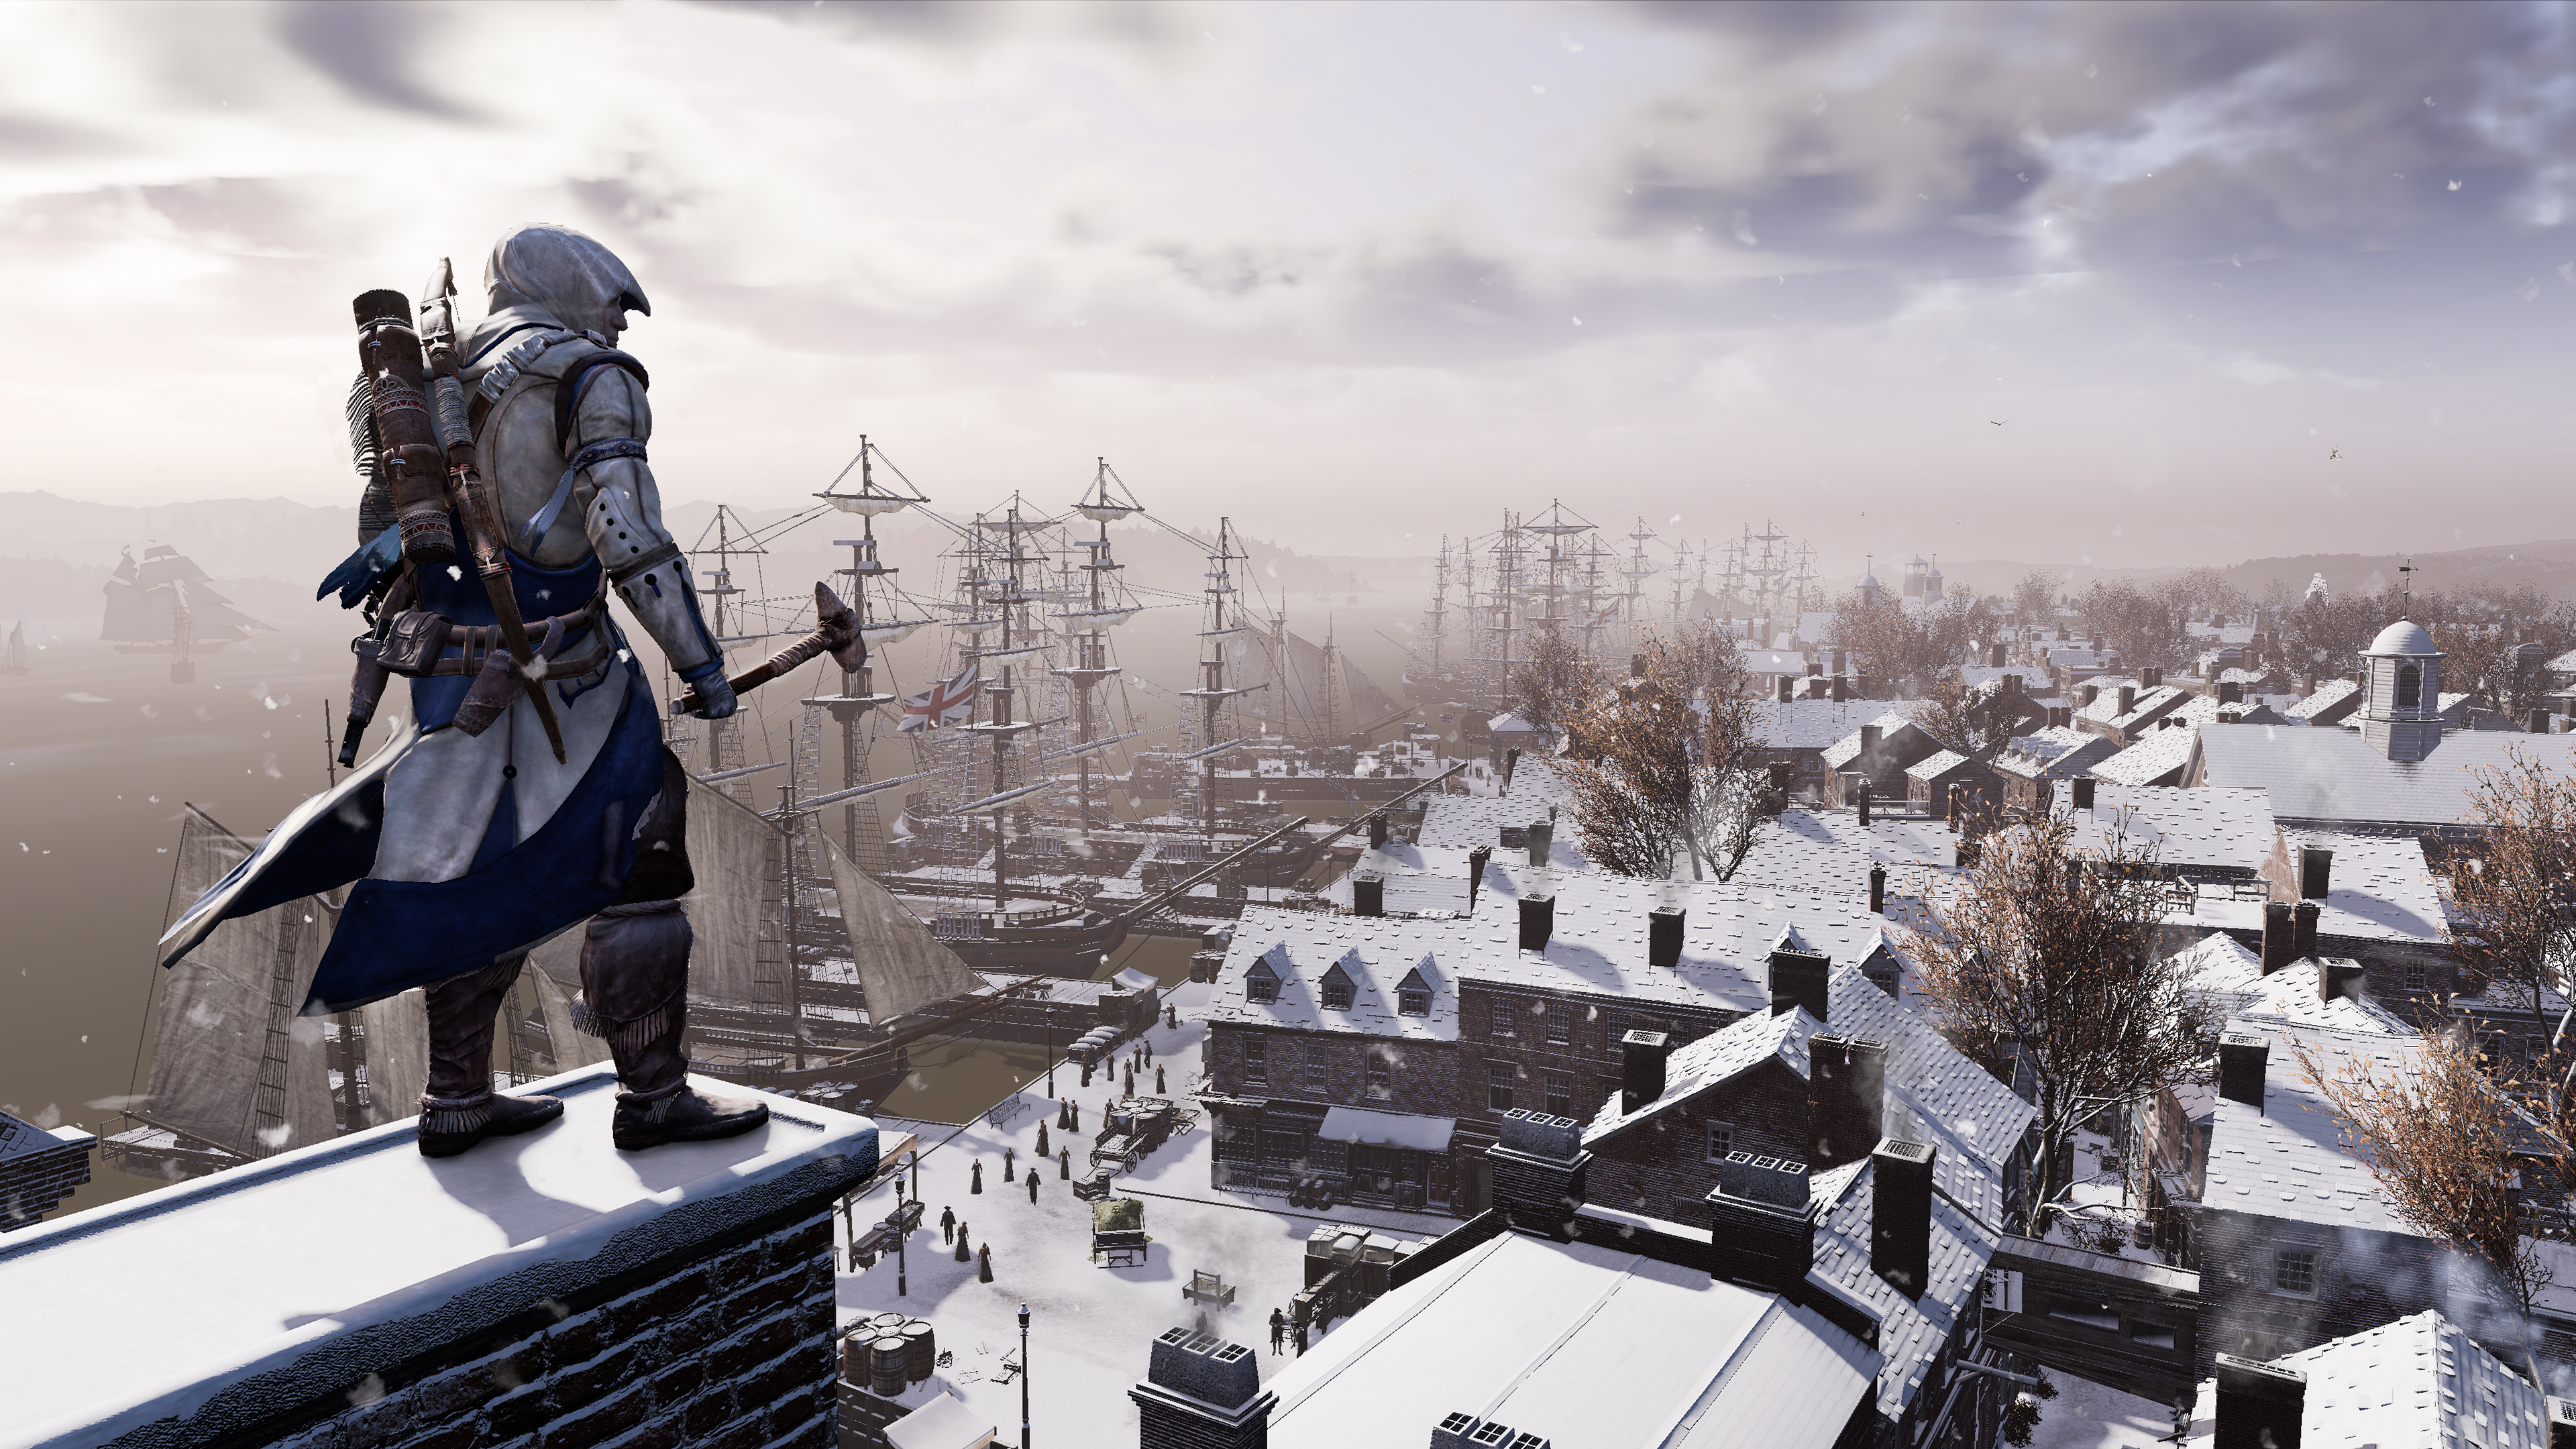 1360x768 Assassins Creed 3 Remastered 4k Laptop Hd Hd 4k Wallpapers Images Backgrounds Photos And Pictures